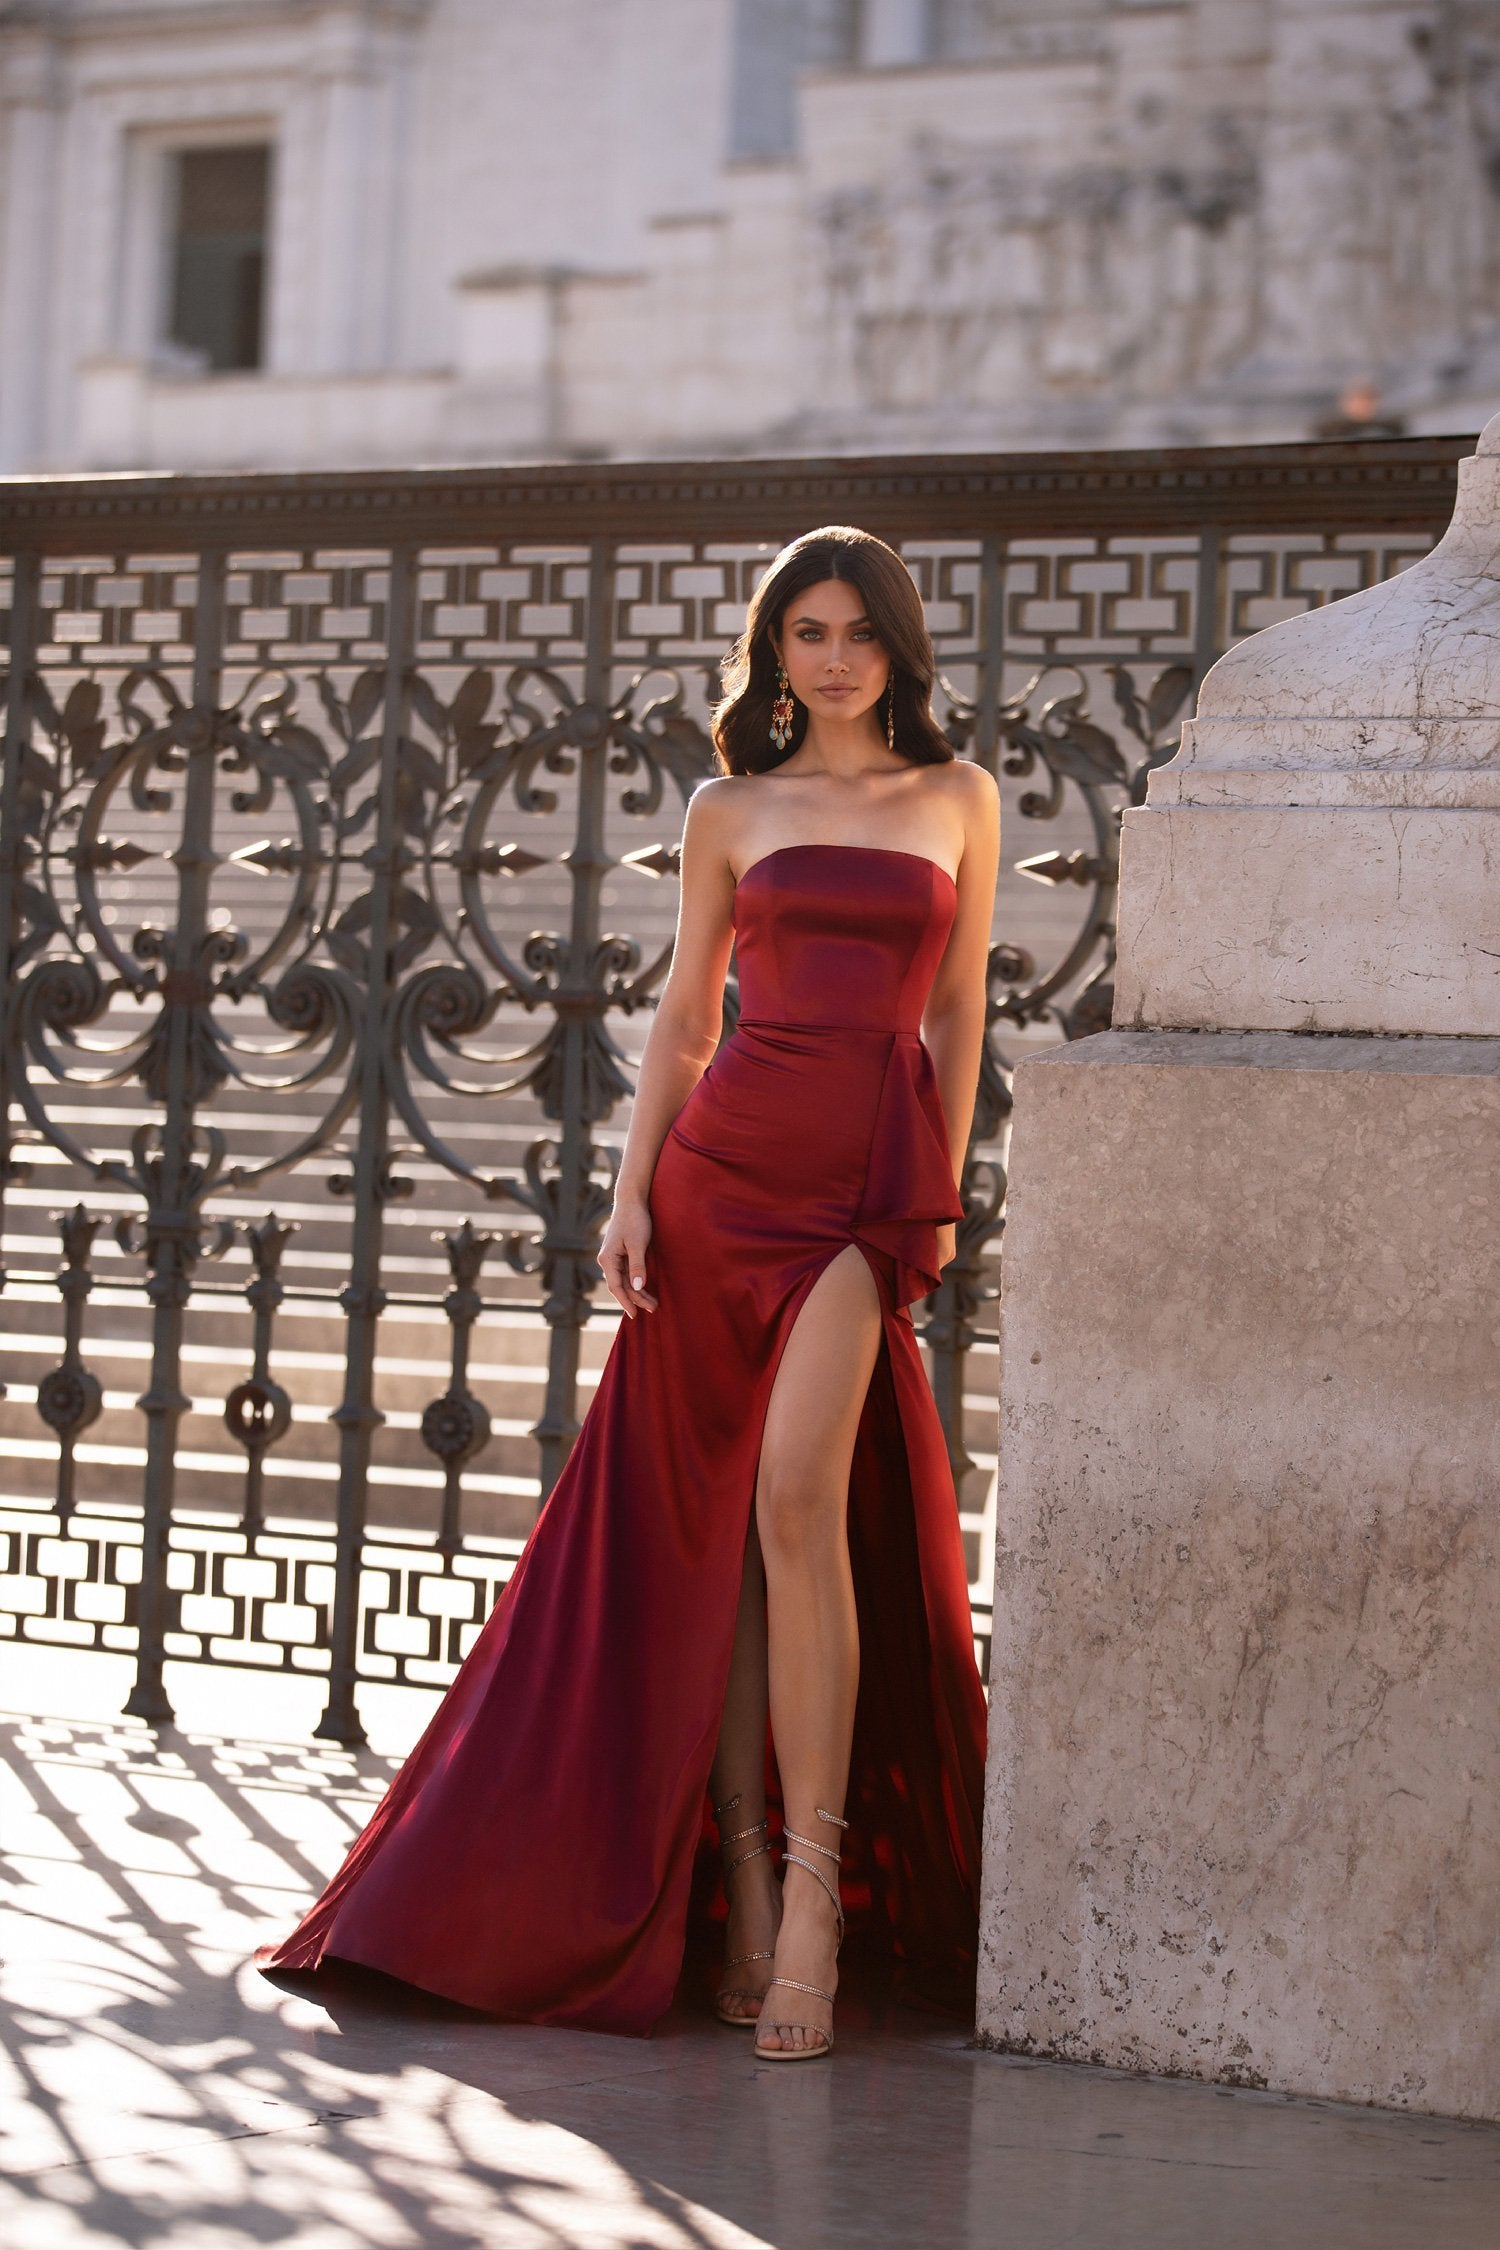 Amidala - Wine Red Strapless Gown with Side Slit & Frill Detail